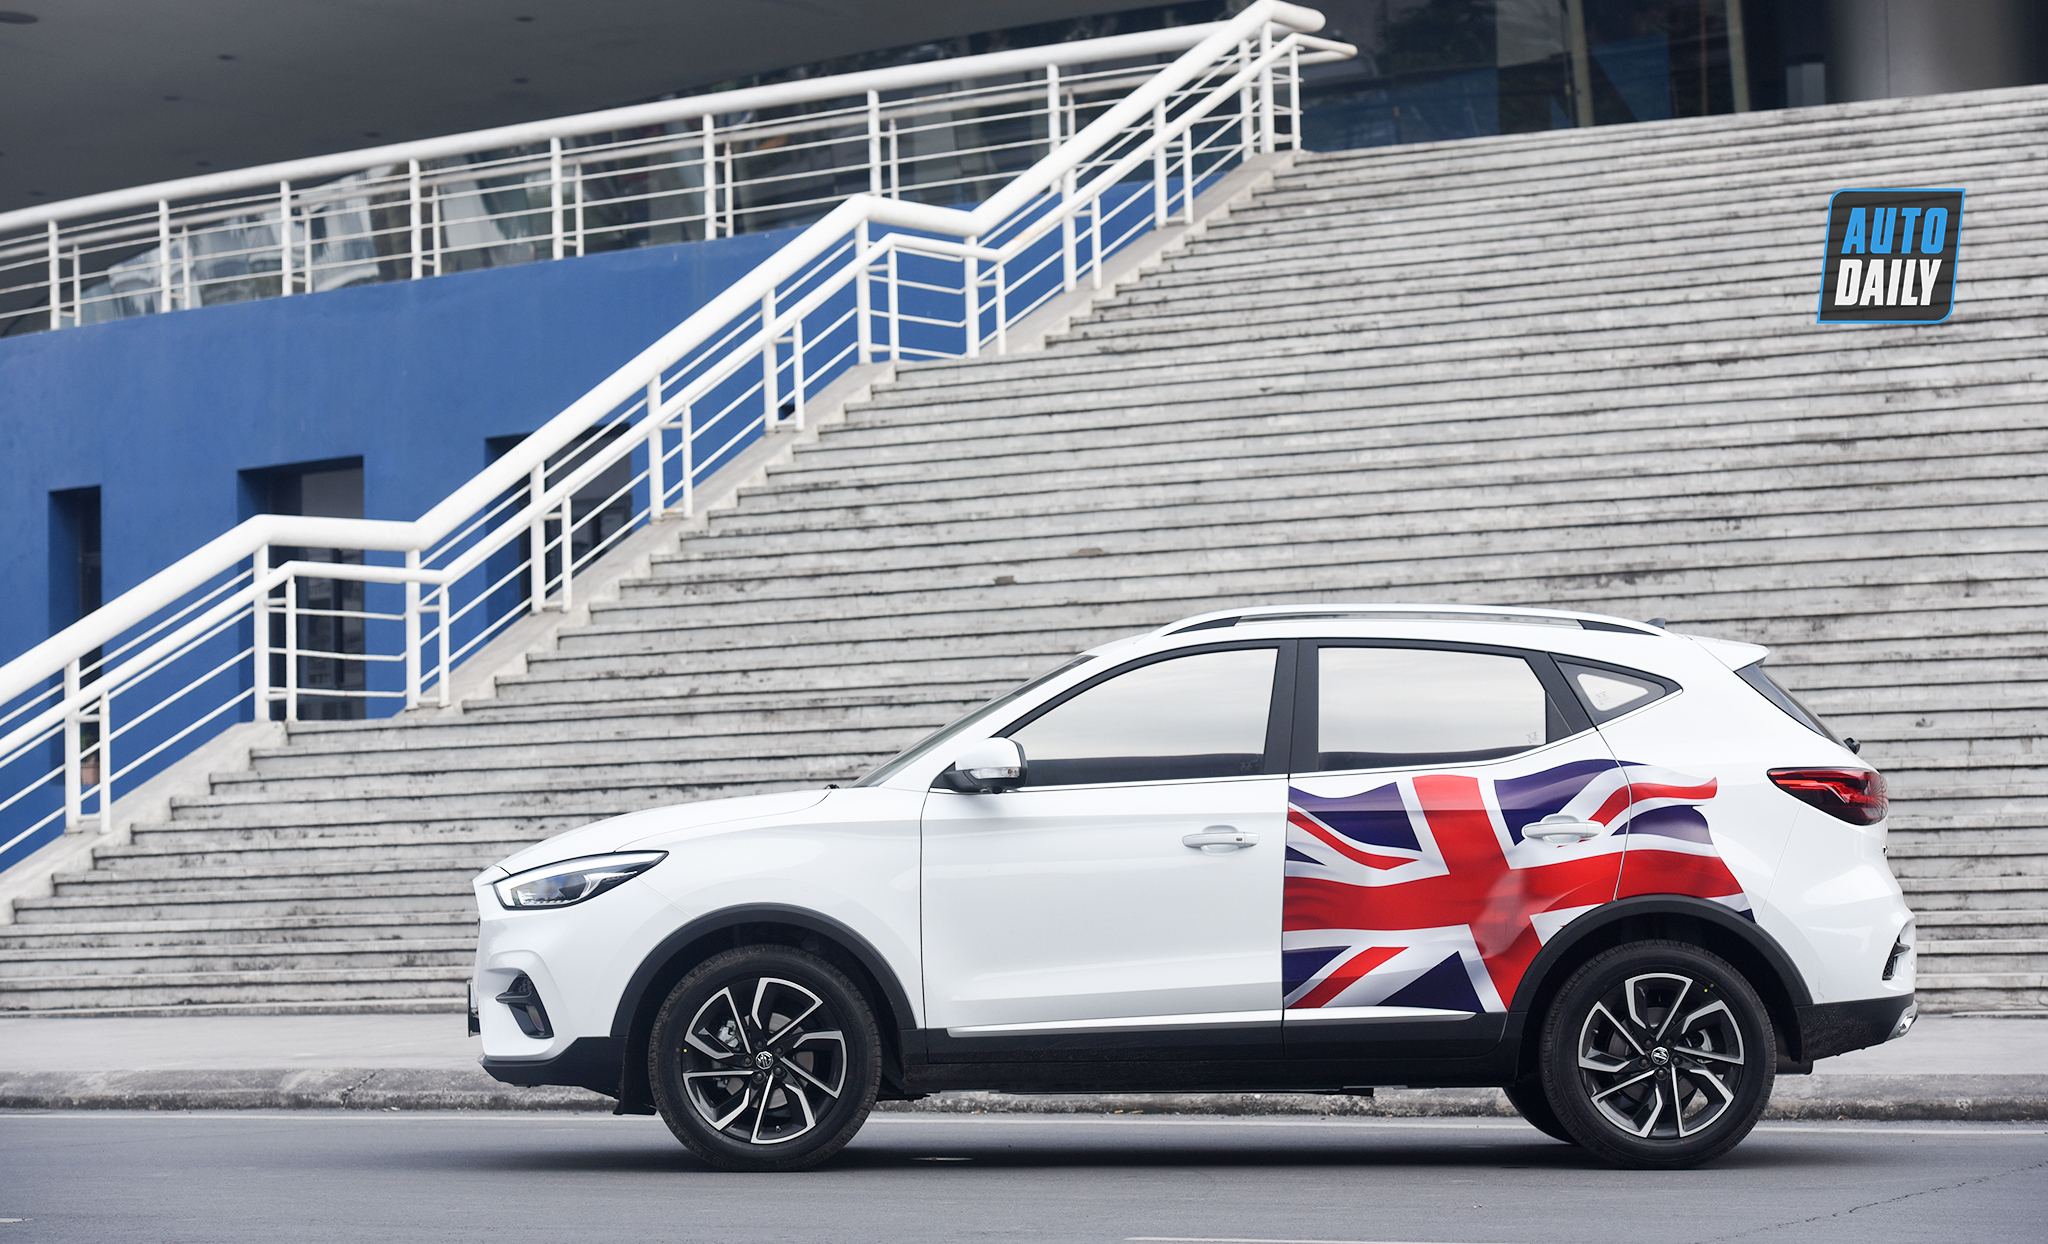 MG ZS 2021 Evaluation: A reasonable choice of VND 600 million 13.jpg